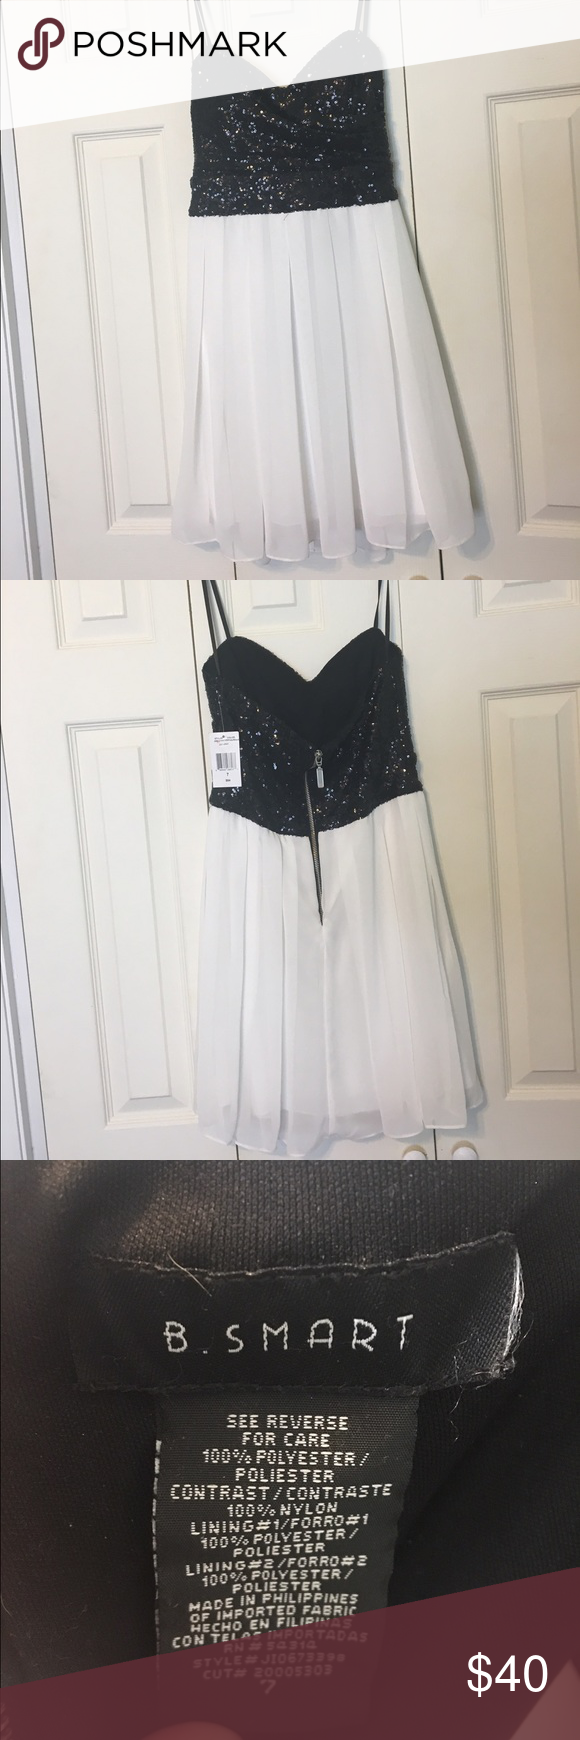 Never been worn brand new homecoming dress nwt homecoming